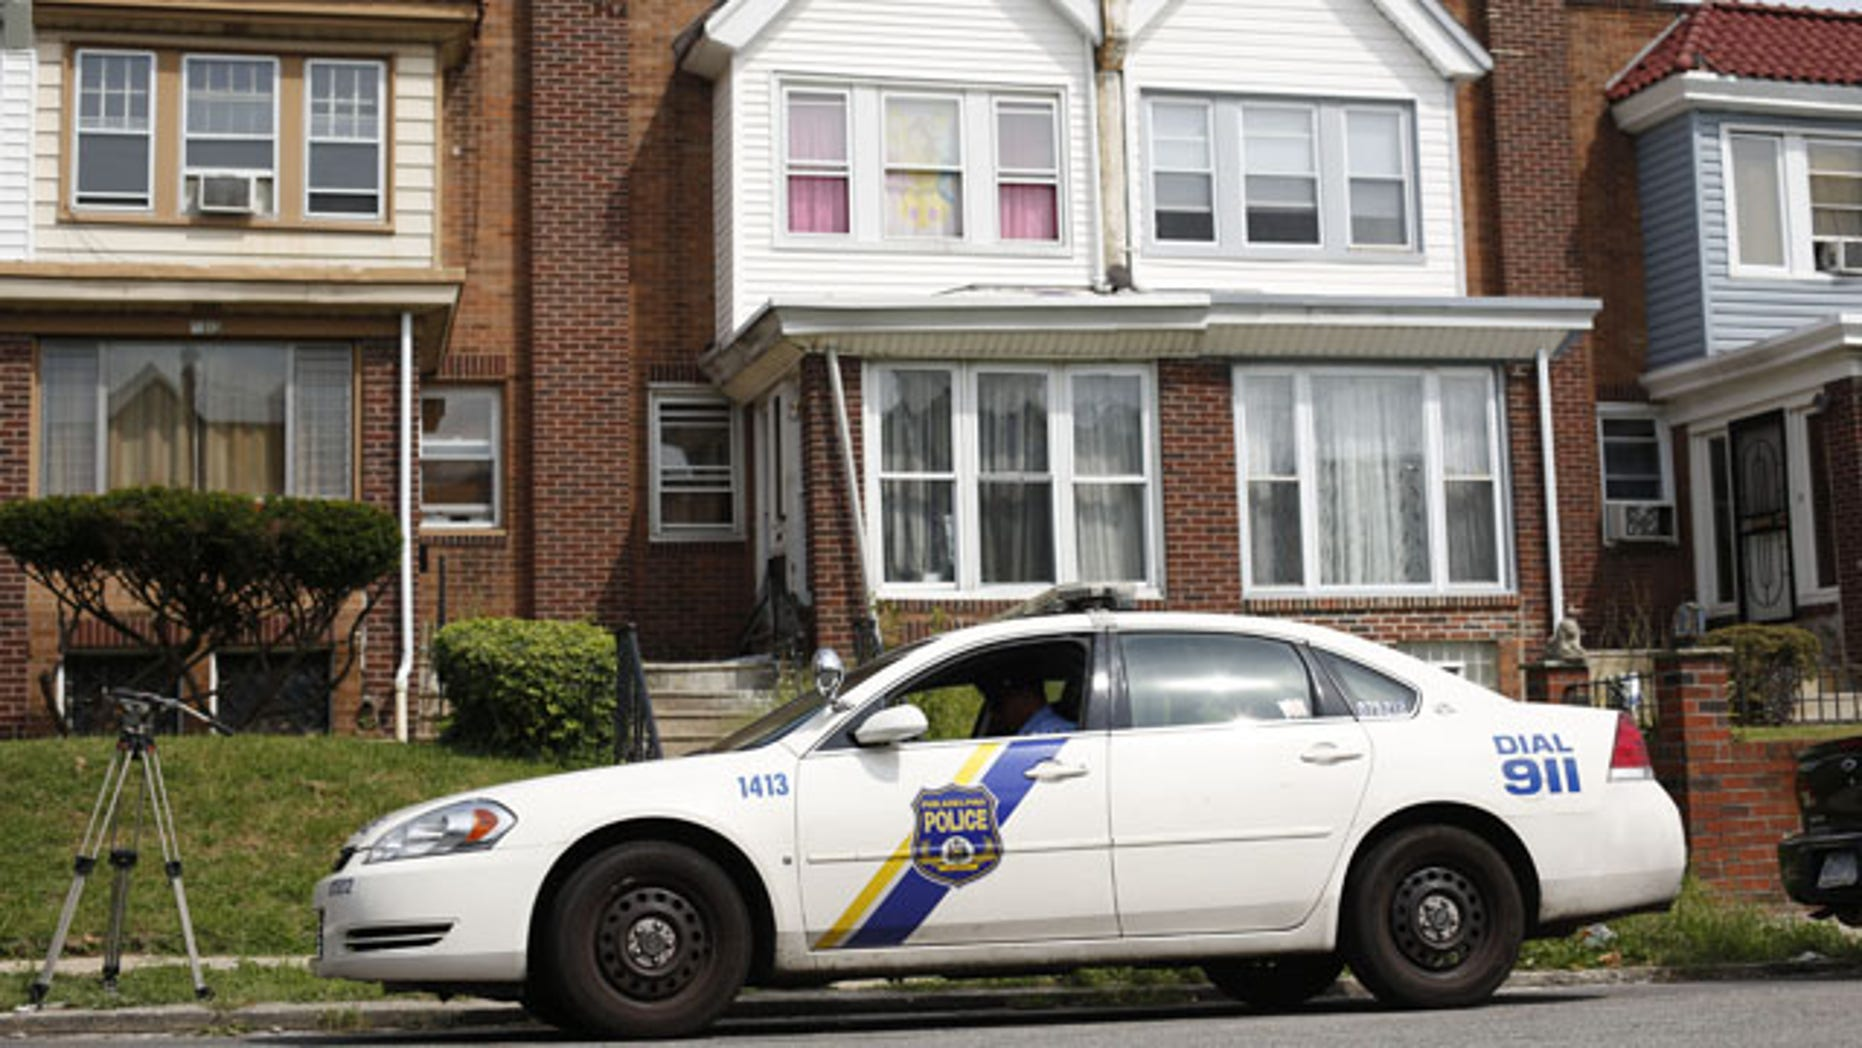 September 9, 2013: A police officer sits outside the home of a severely disabled 3-year-old girl who was pronounced dead at a nearby hospital in Philadelphia. Nathalyz Rivera, a twin, weighed just 11 pounds when she died and police in Philadelphia called her death a homicide. (AP Photo/Matt Rourke)